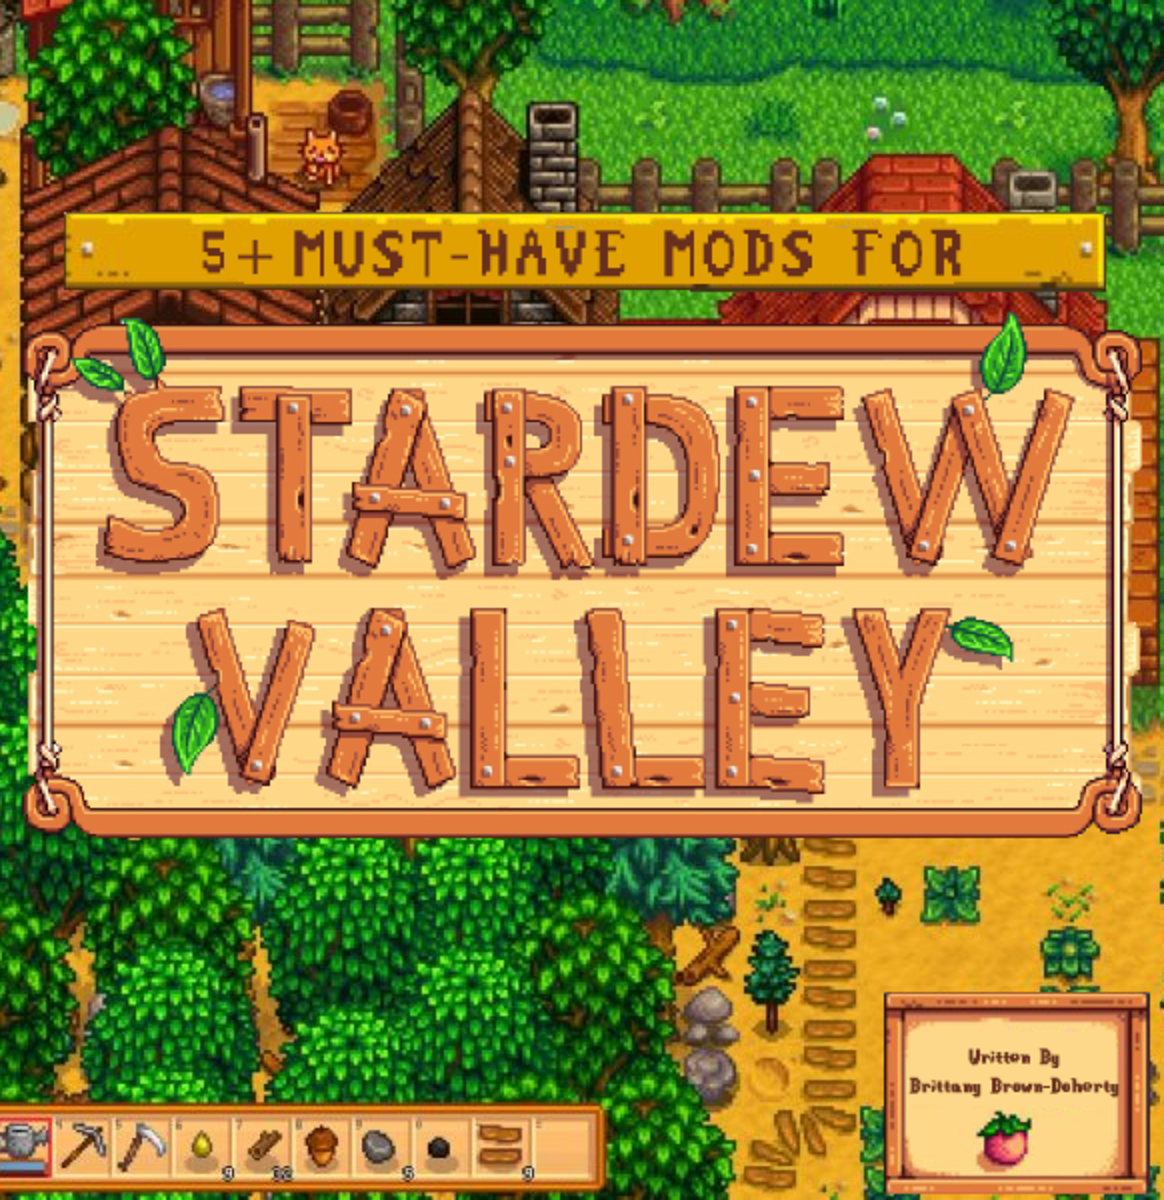 5+ of the best mods for Stardew Valley!